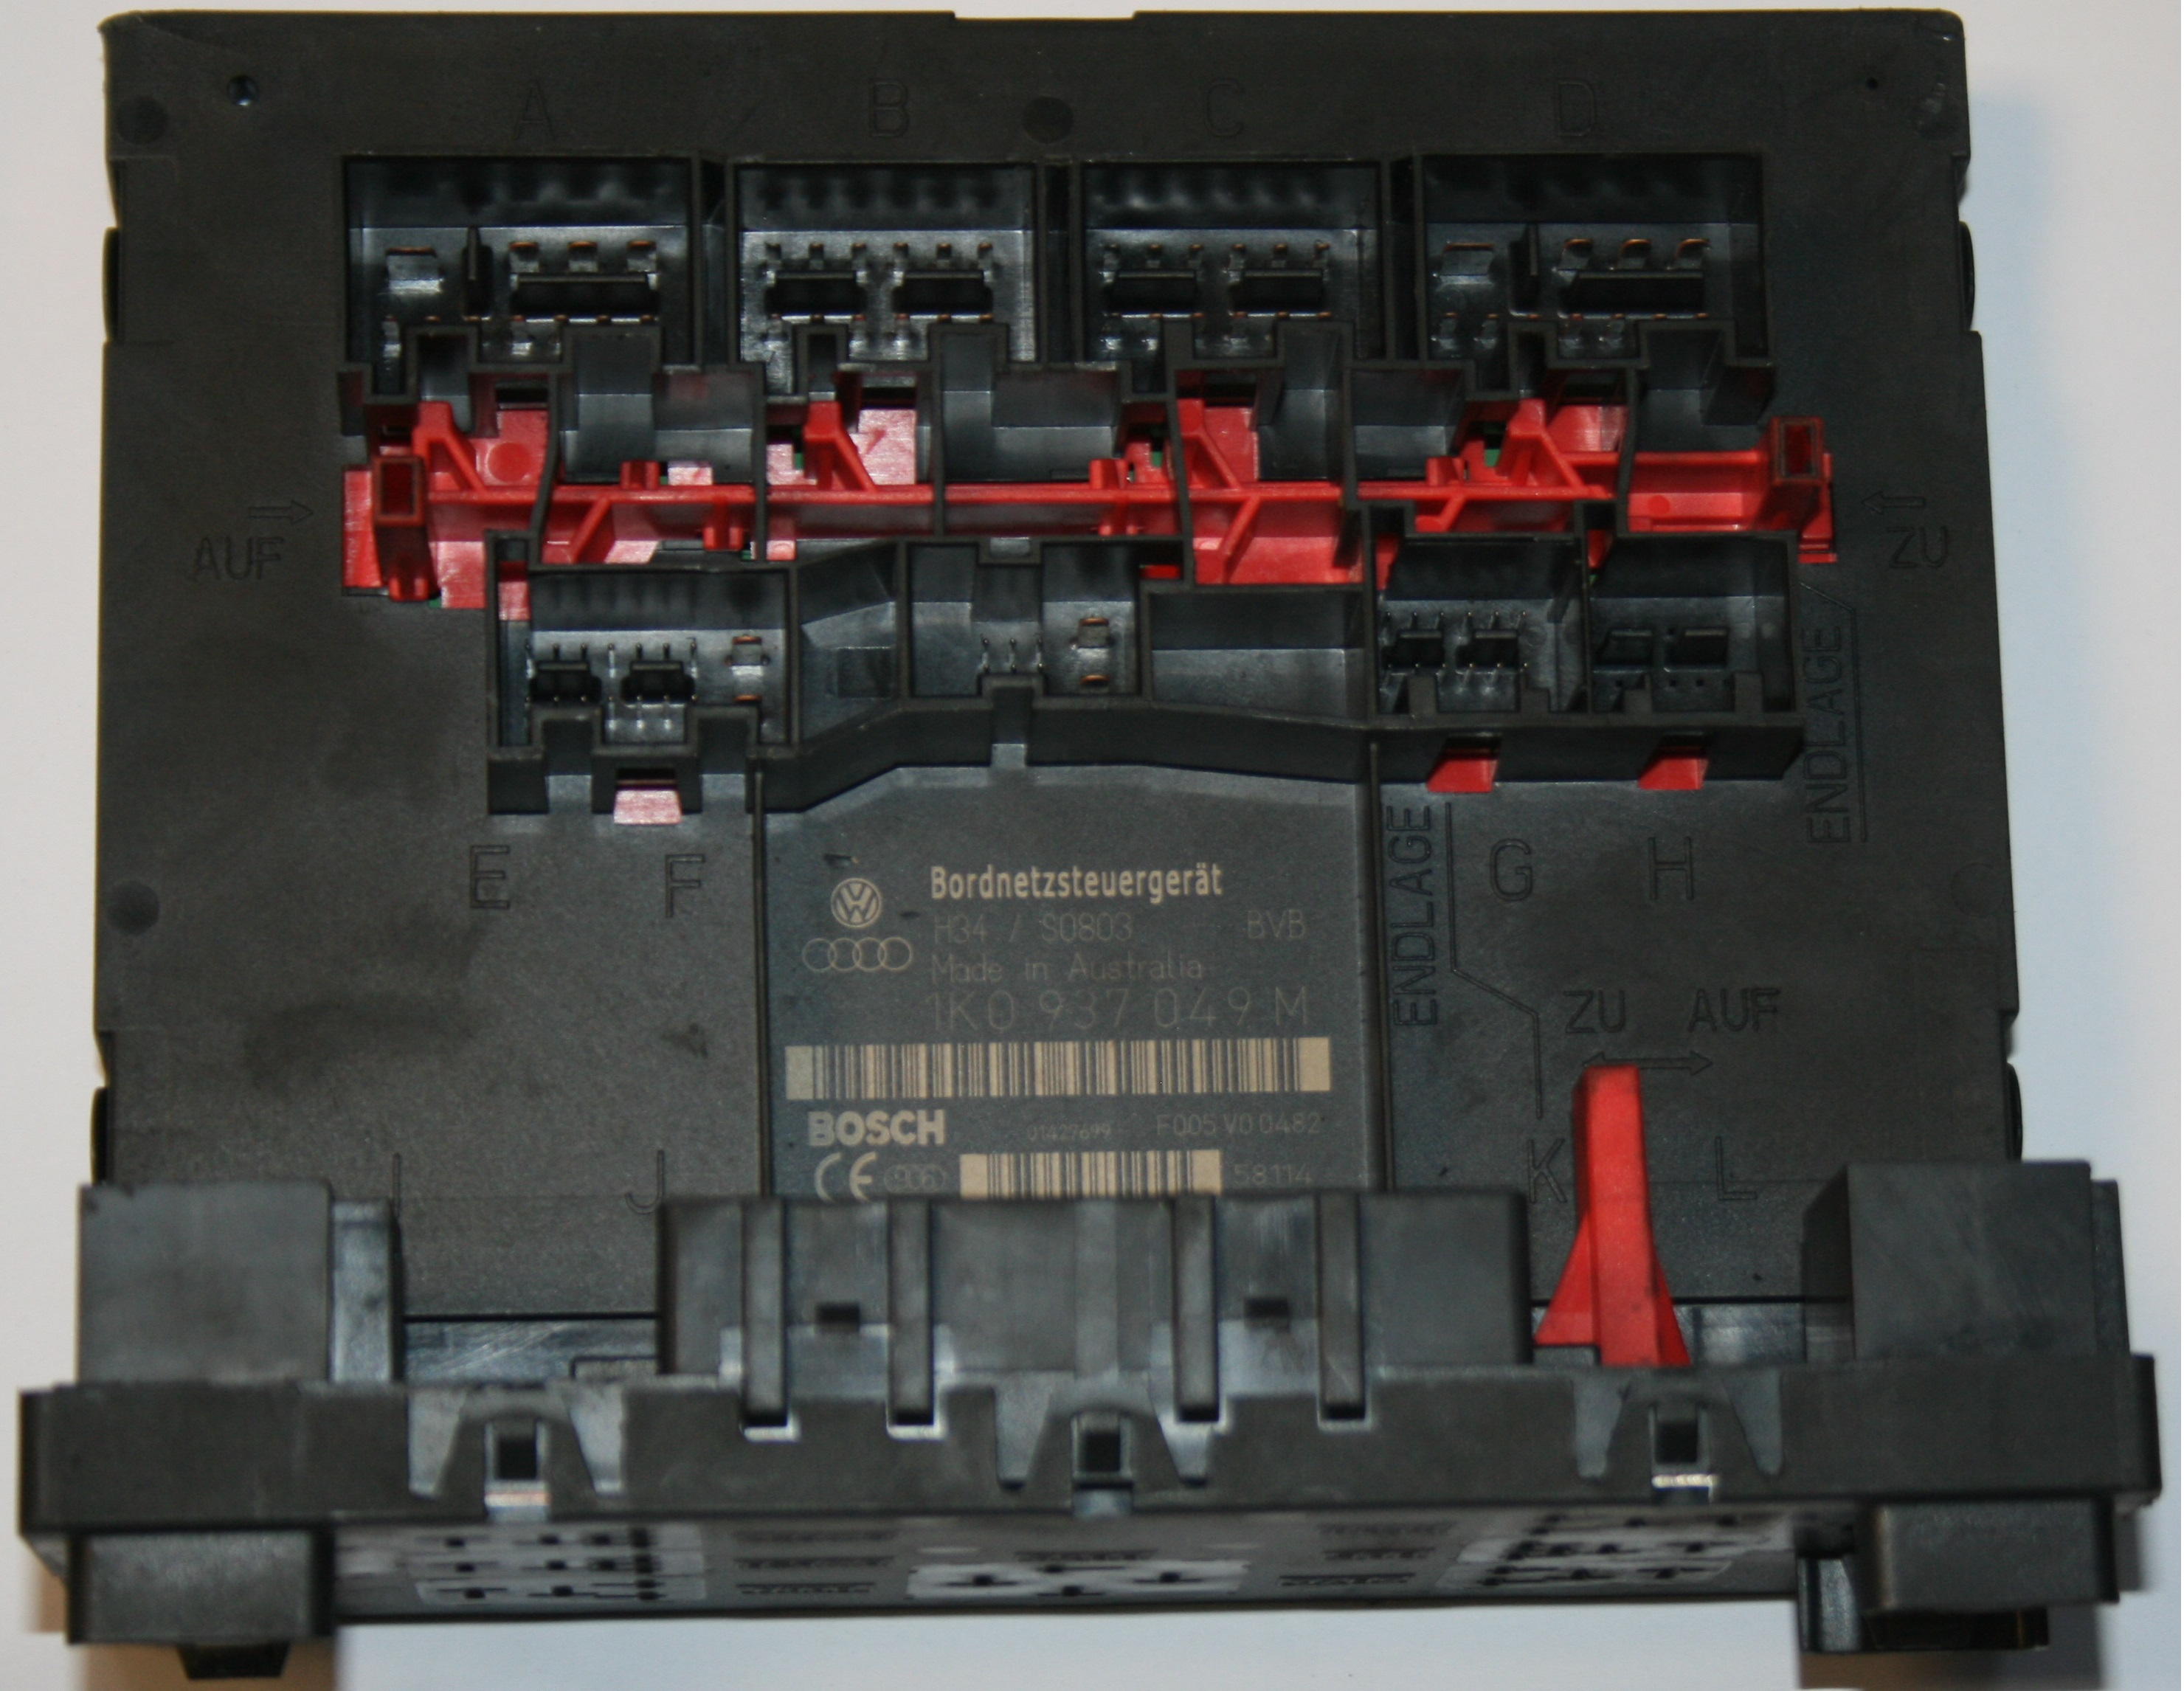 00393 used genuine vw golf central control fuse box 1k0 937 049 n mk5 golf fuse box diagram at alyssarenee.co